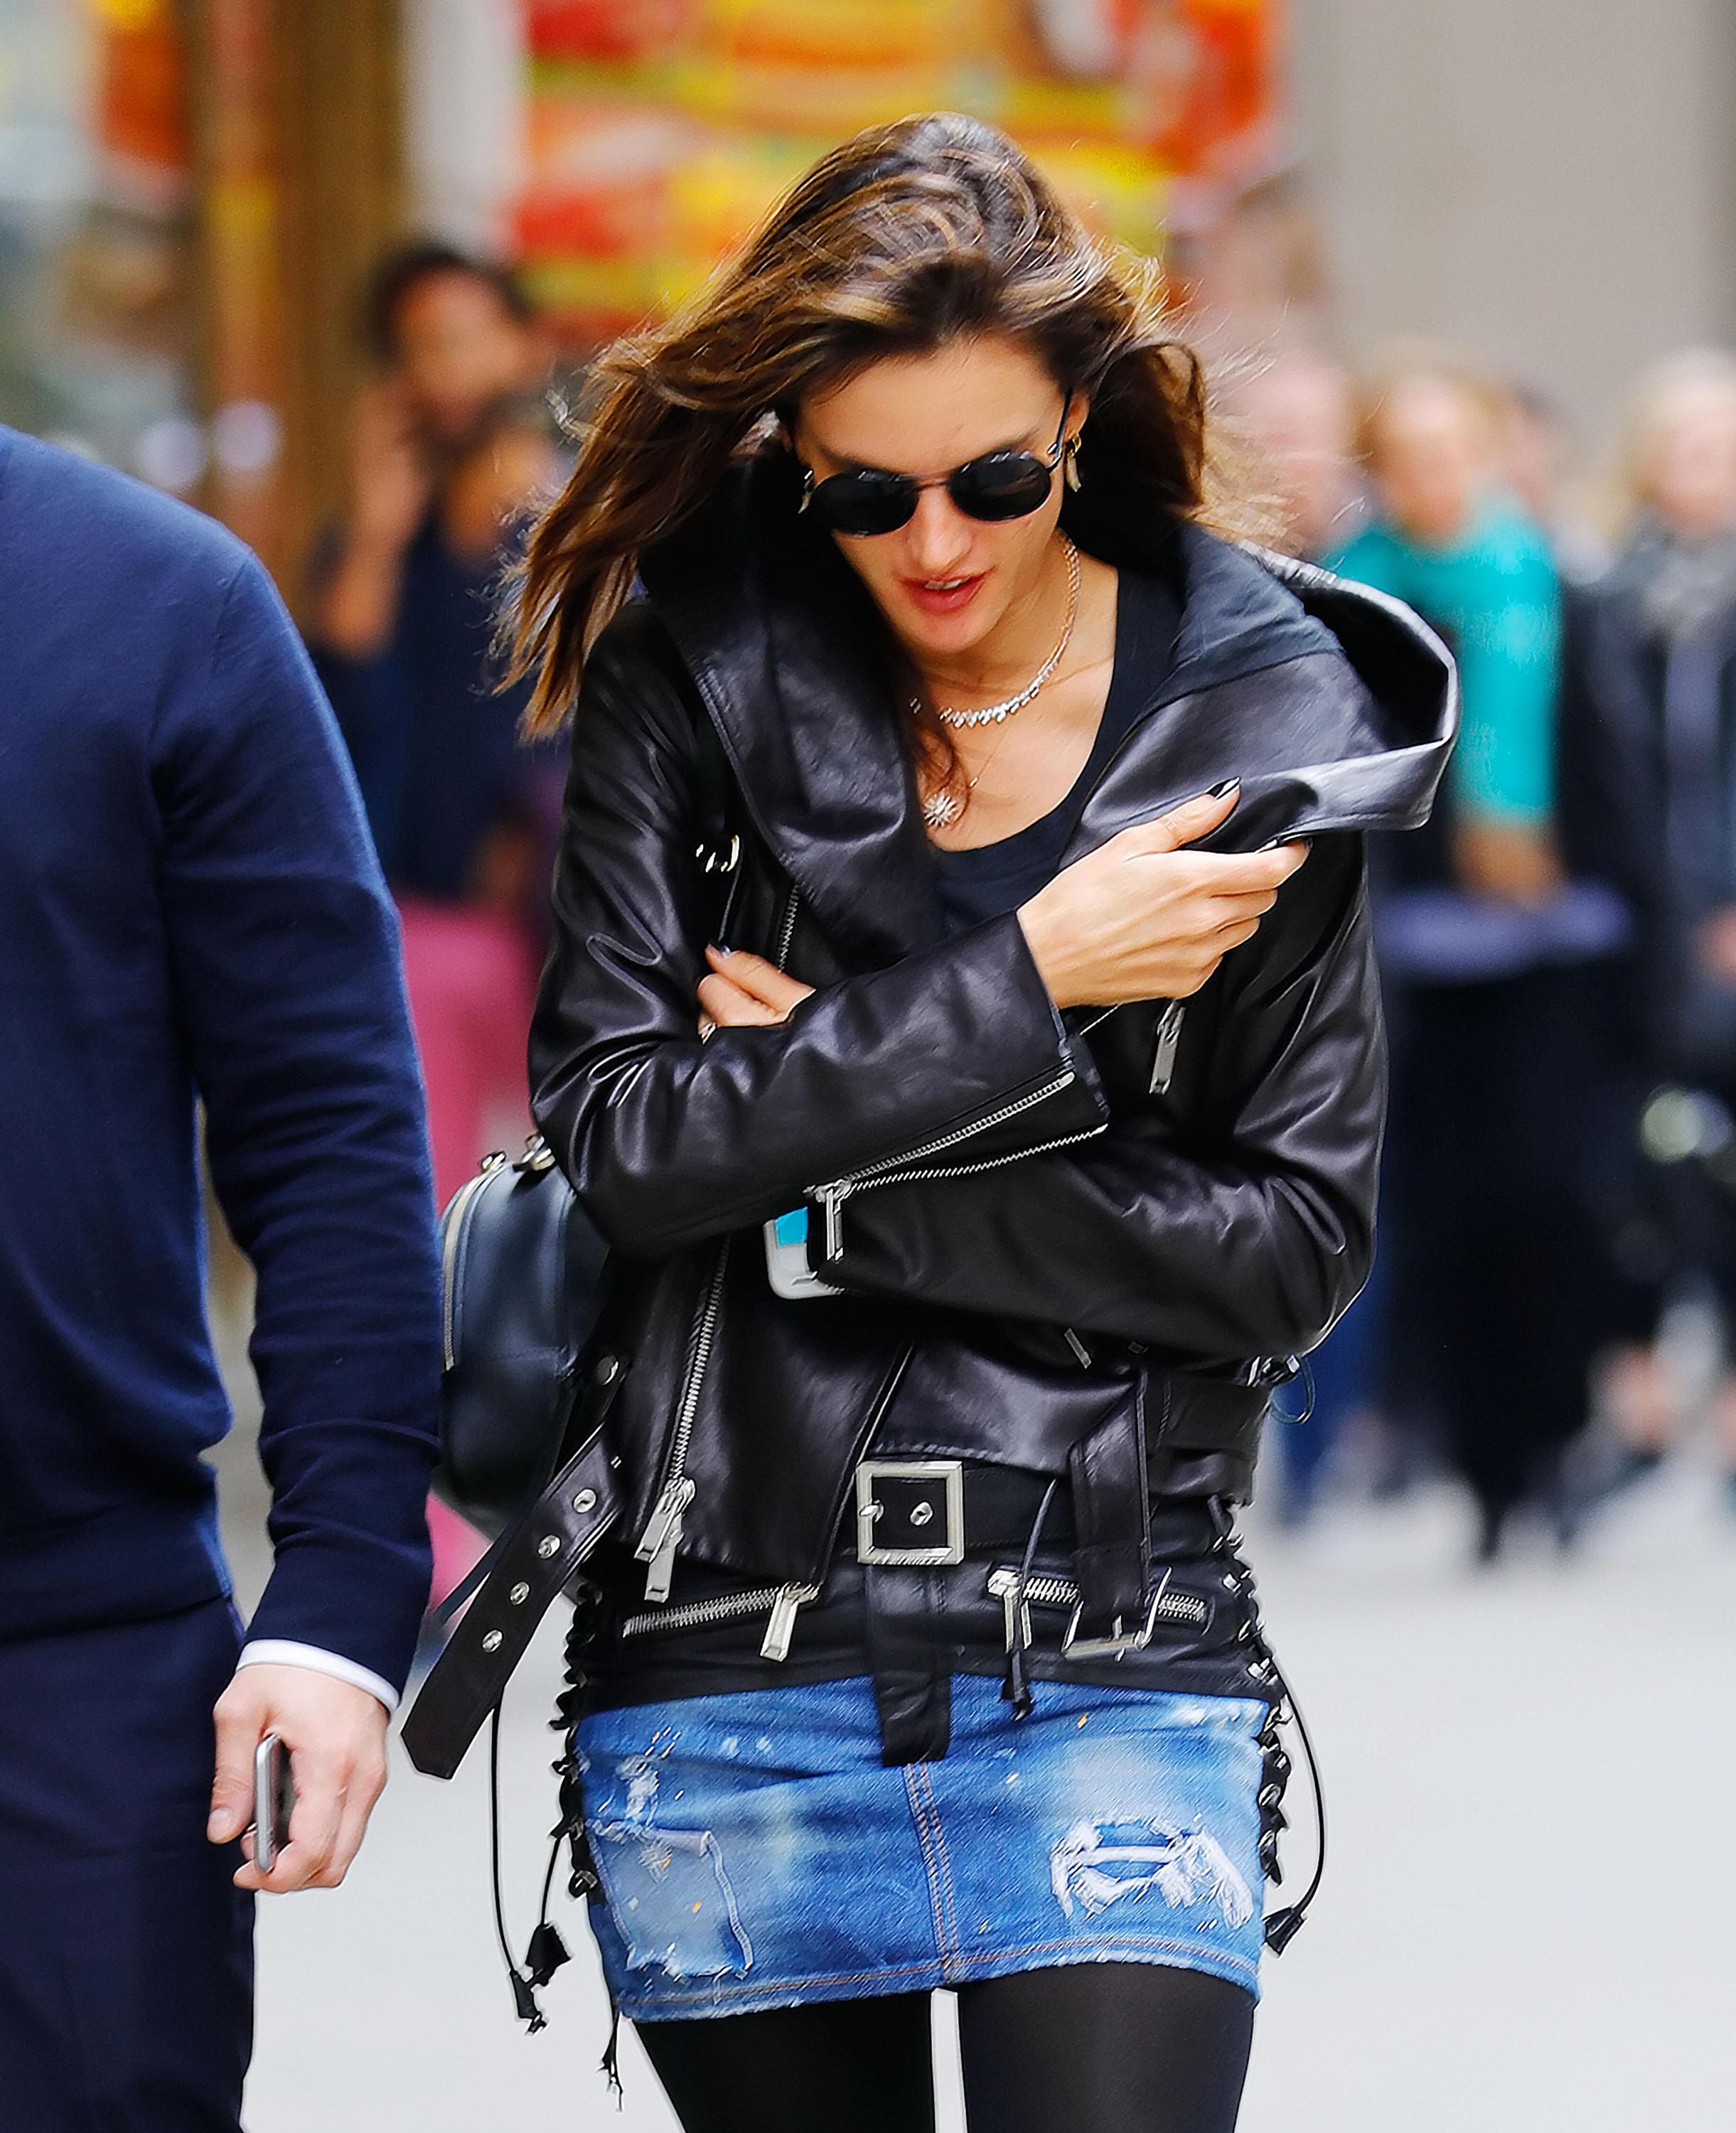 Alessandra Ambrosio out in NYC